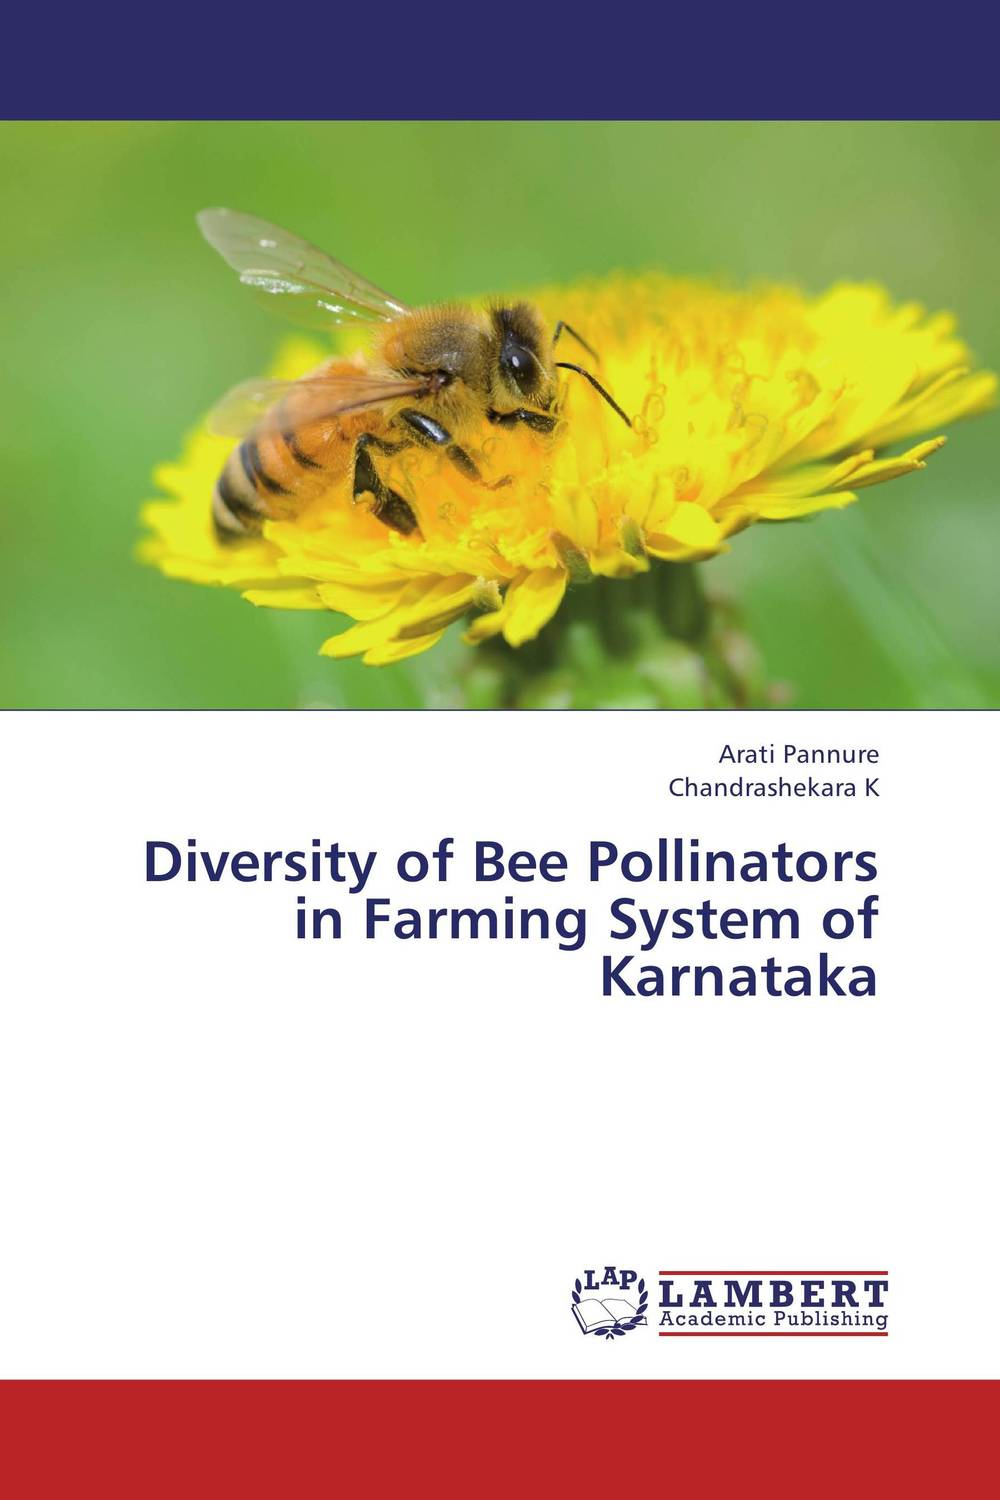 Diversity of Bee Pollinators in Farming System of Karnataka effects of grazing on insect pollinator diversity and abundance